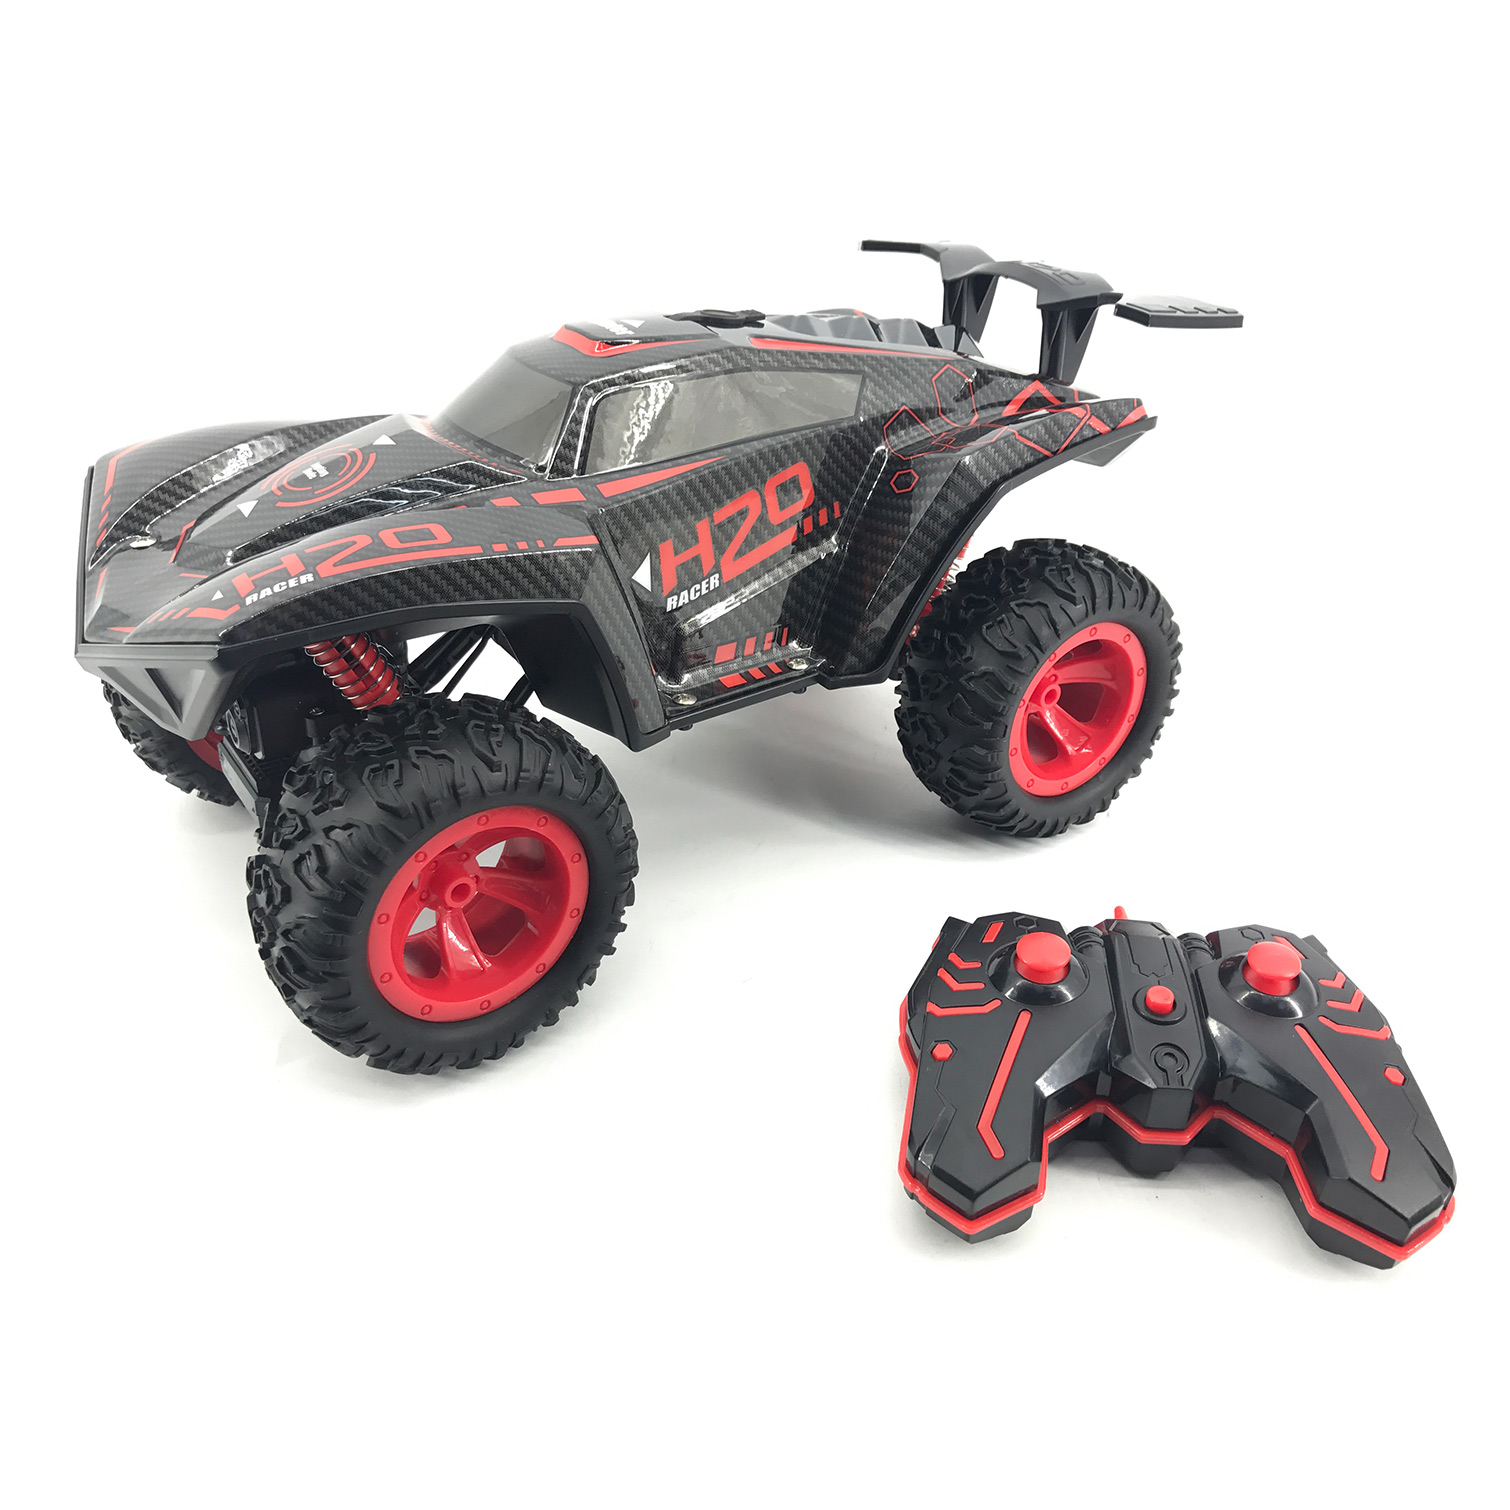 Remote Control Fog Steam Racer with Light and Fog 1:12 (20155)